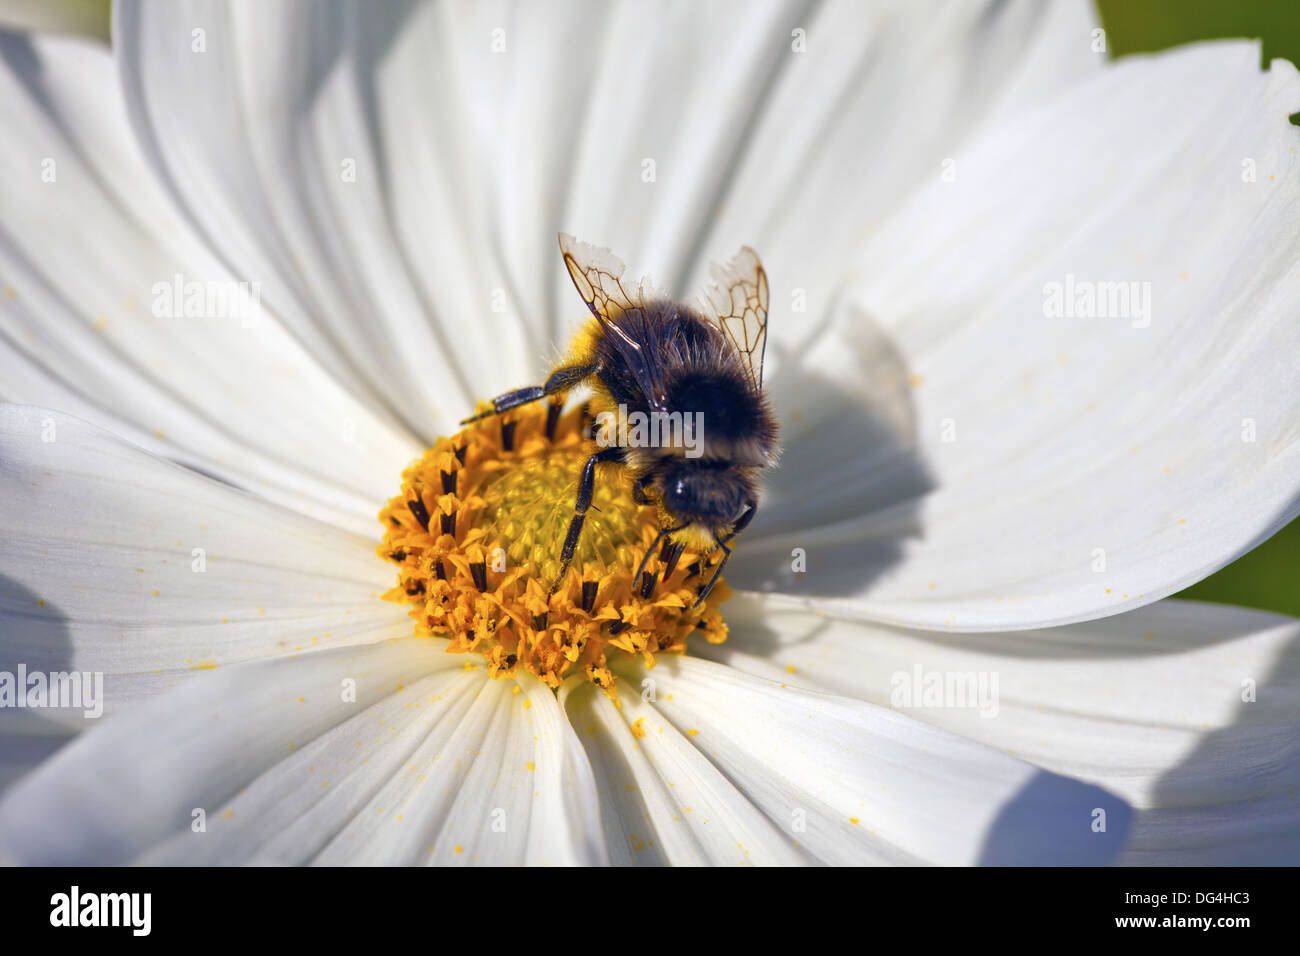 Close-up of a honey bee gathering nectar in the middle of a cosmos flower. - Stock Image